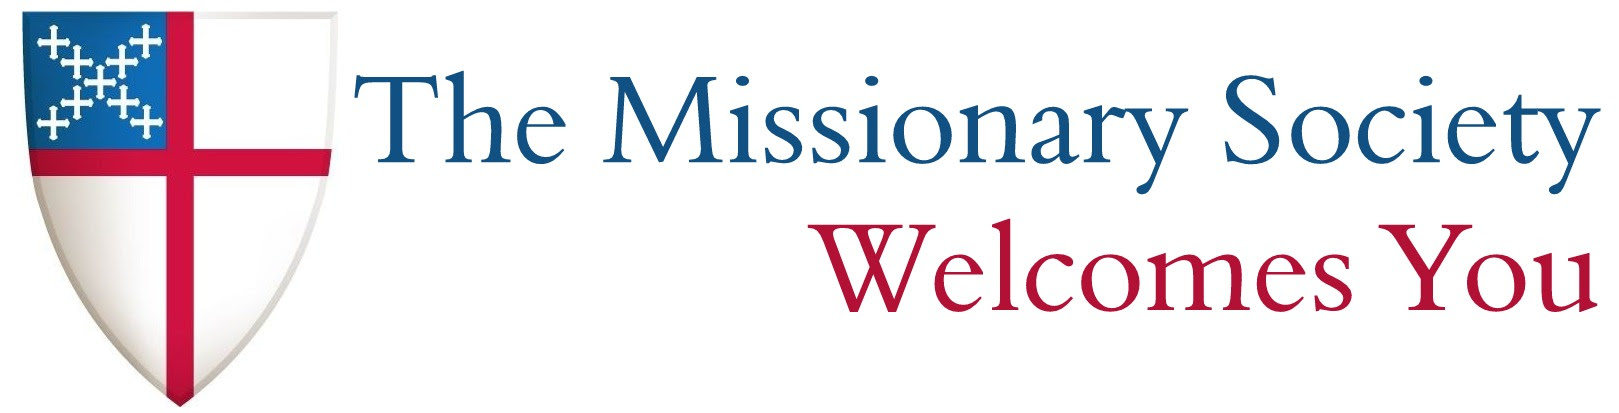 The Missionary Society Welcomes You